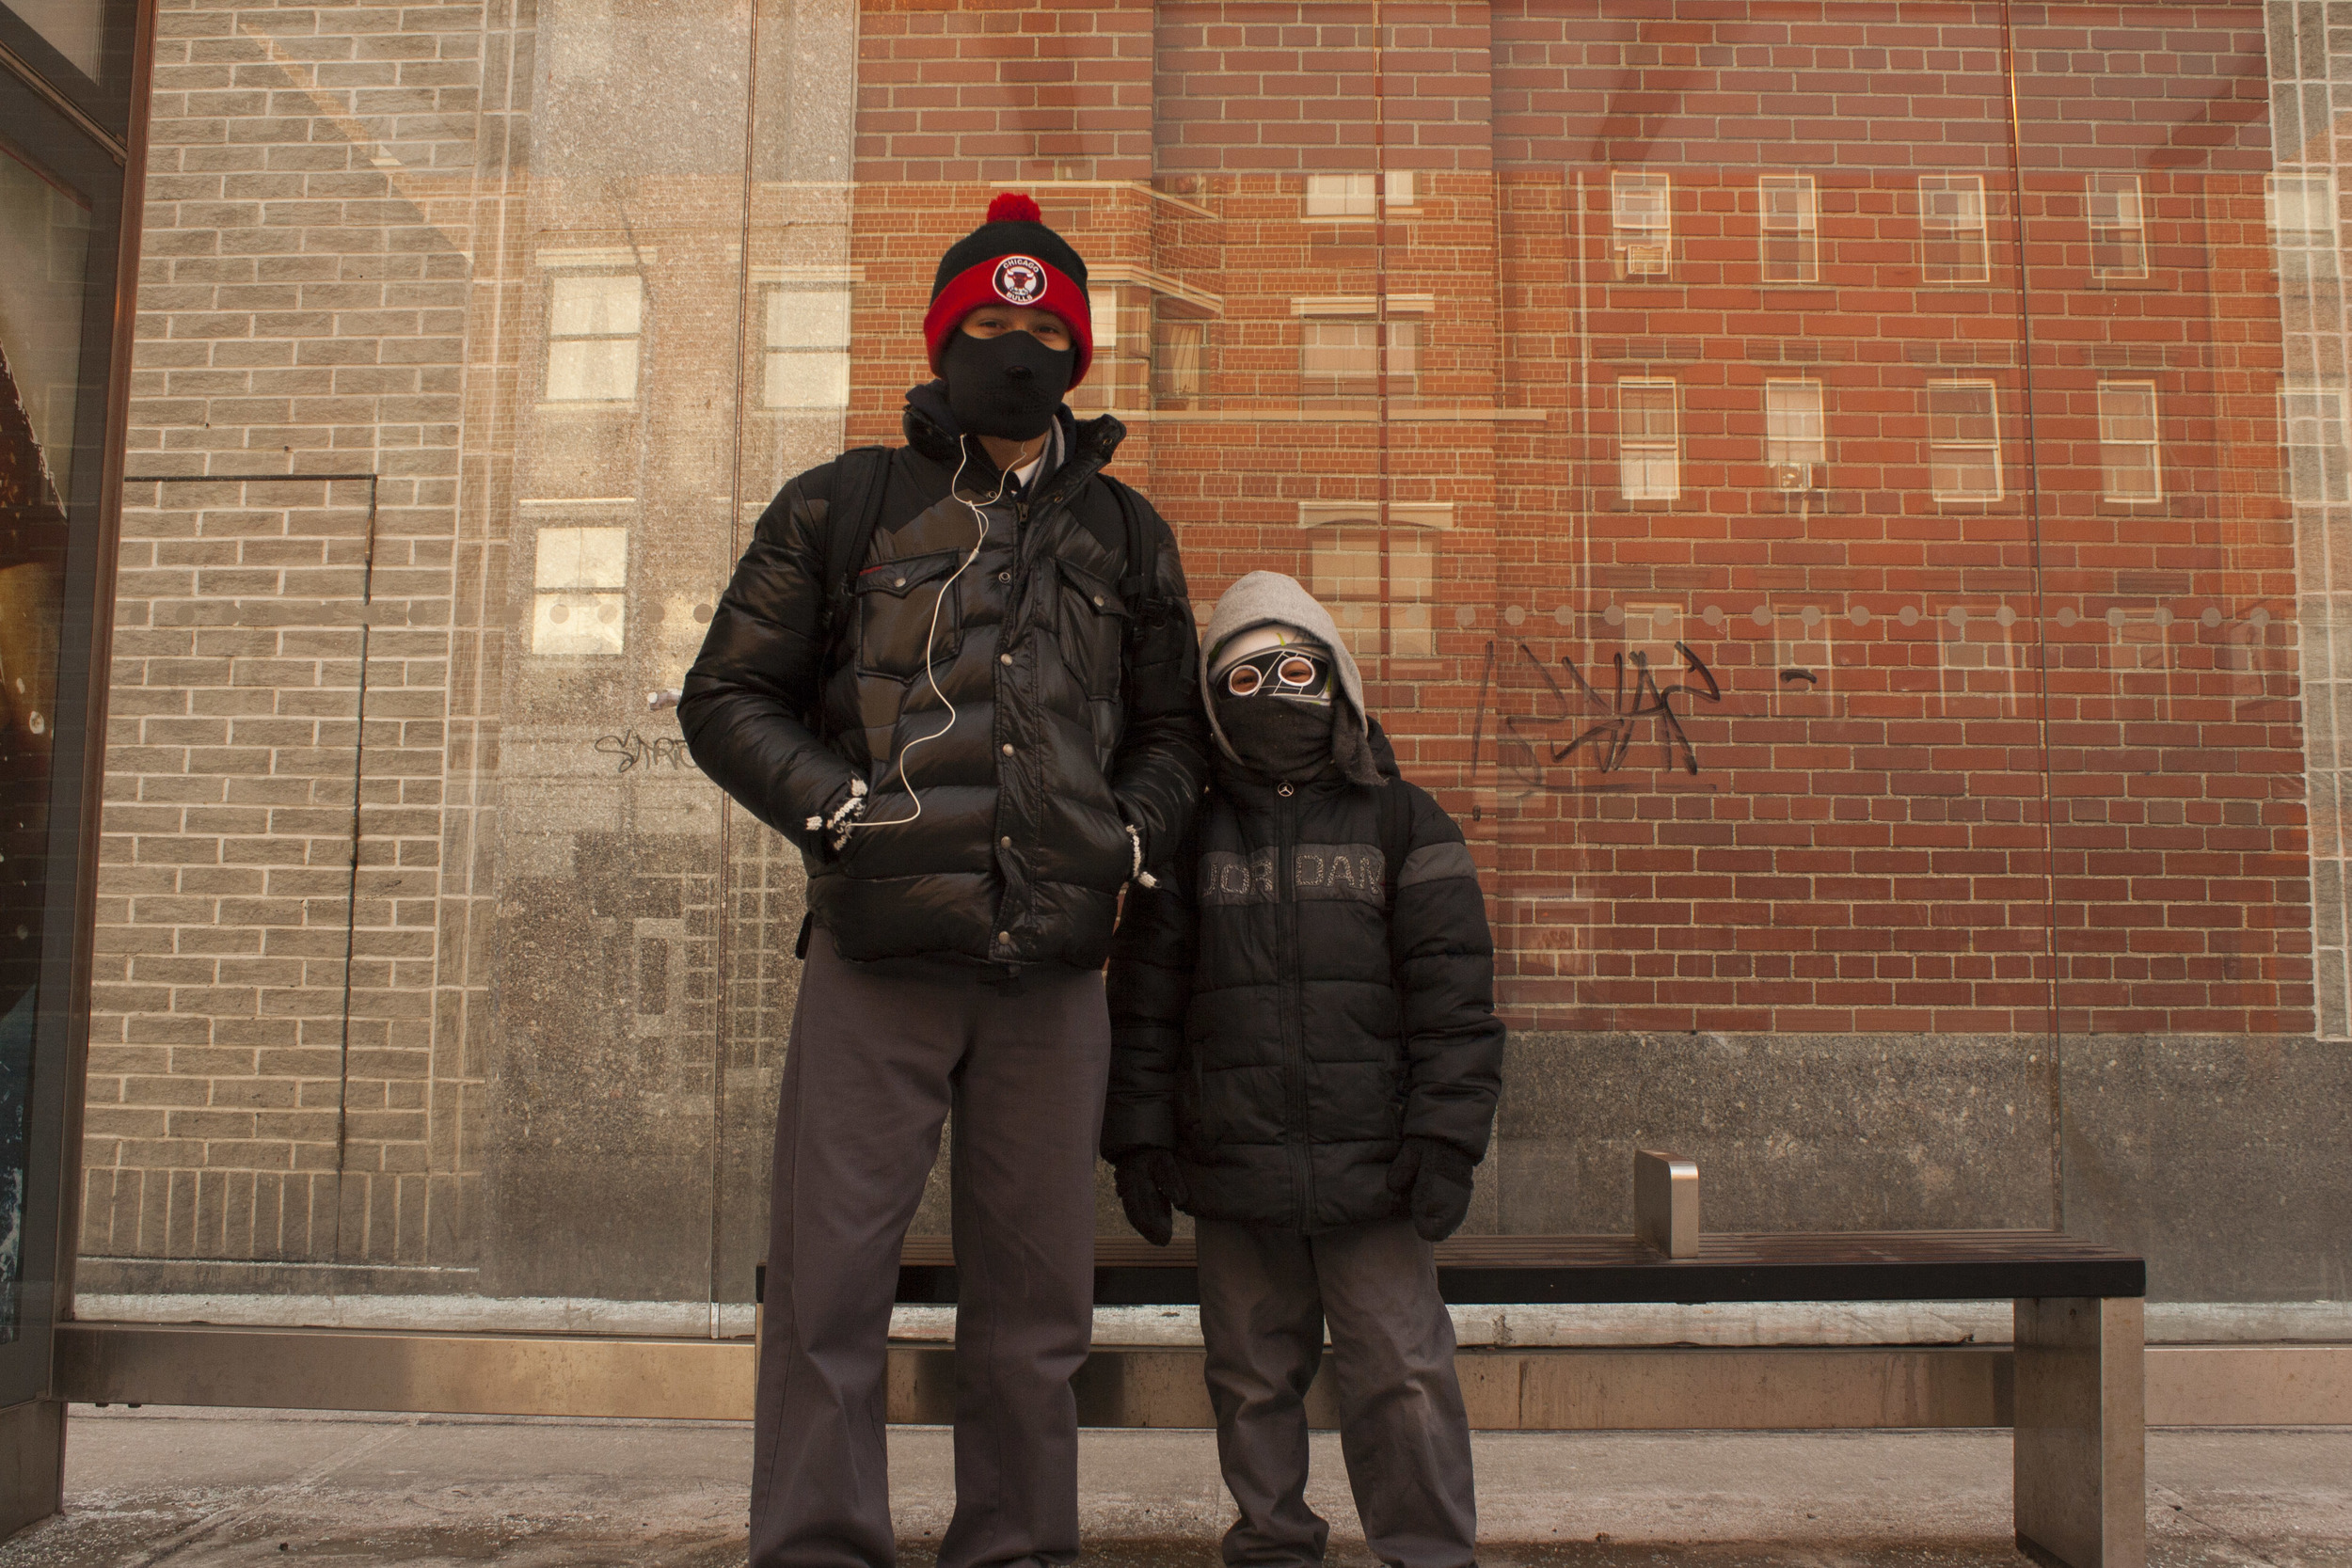 Brothers wait for the bus on a chilly winter morning.